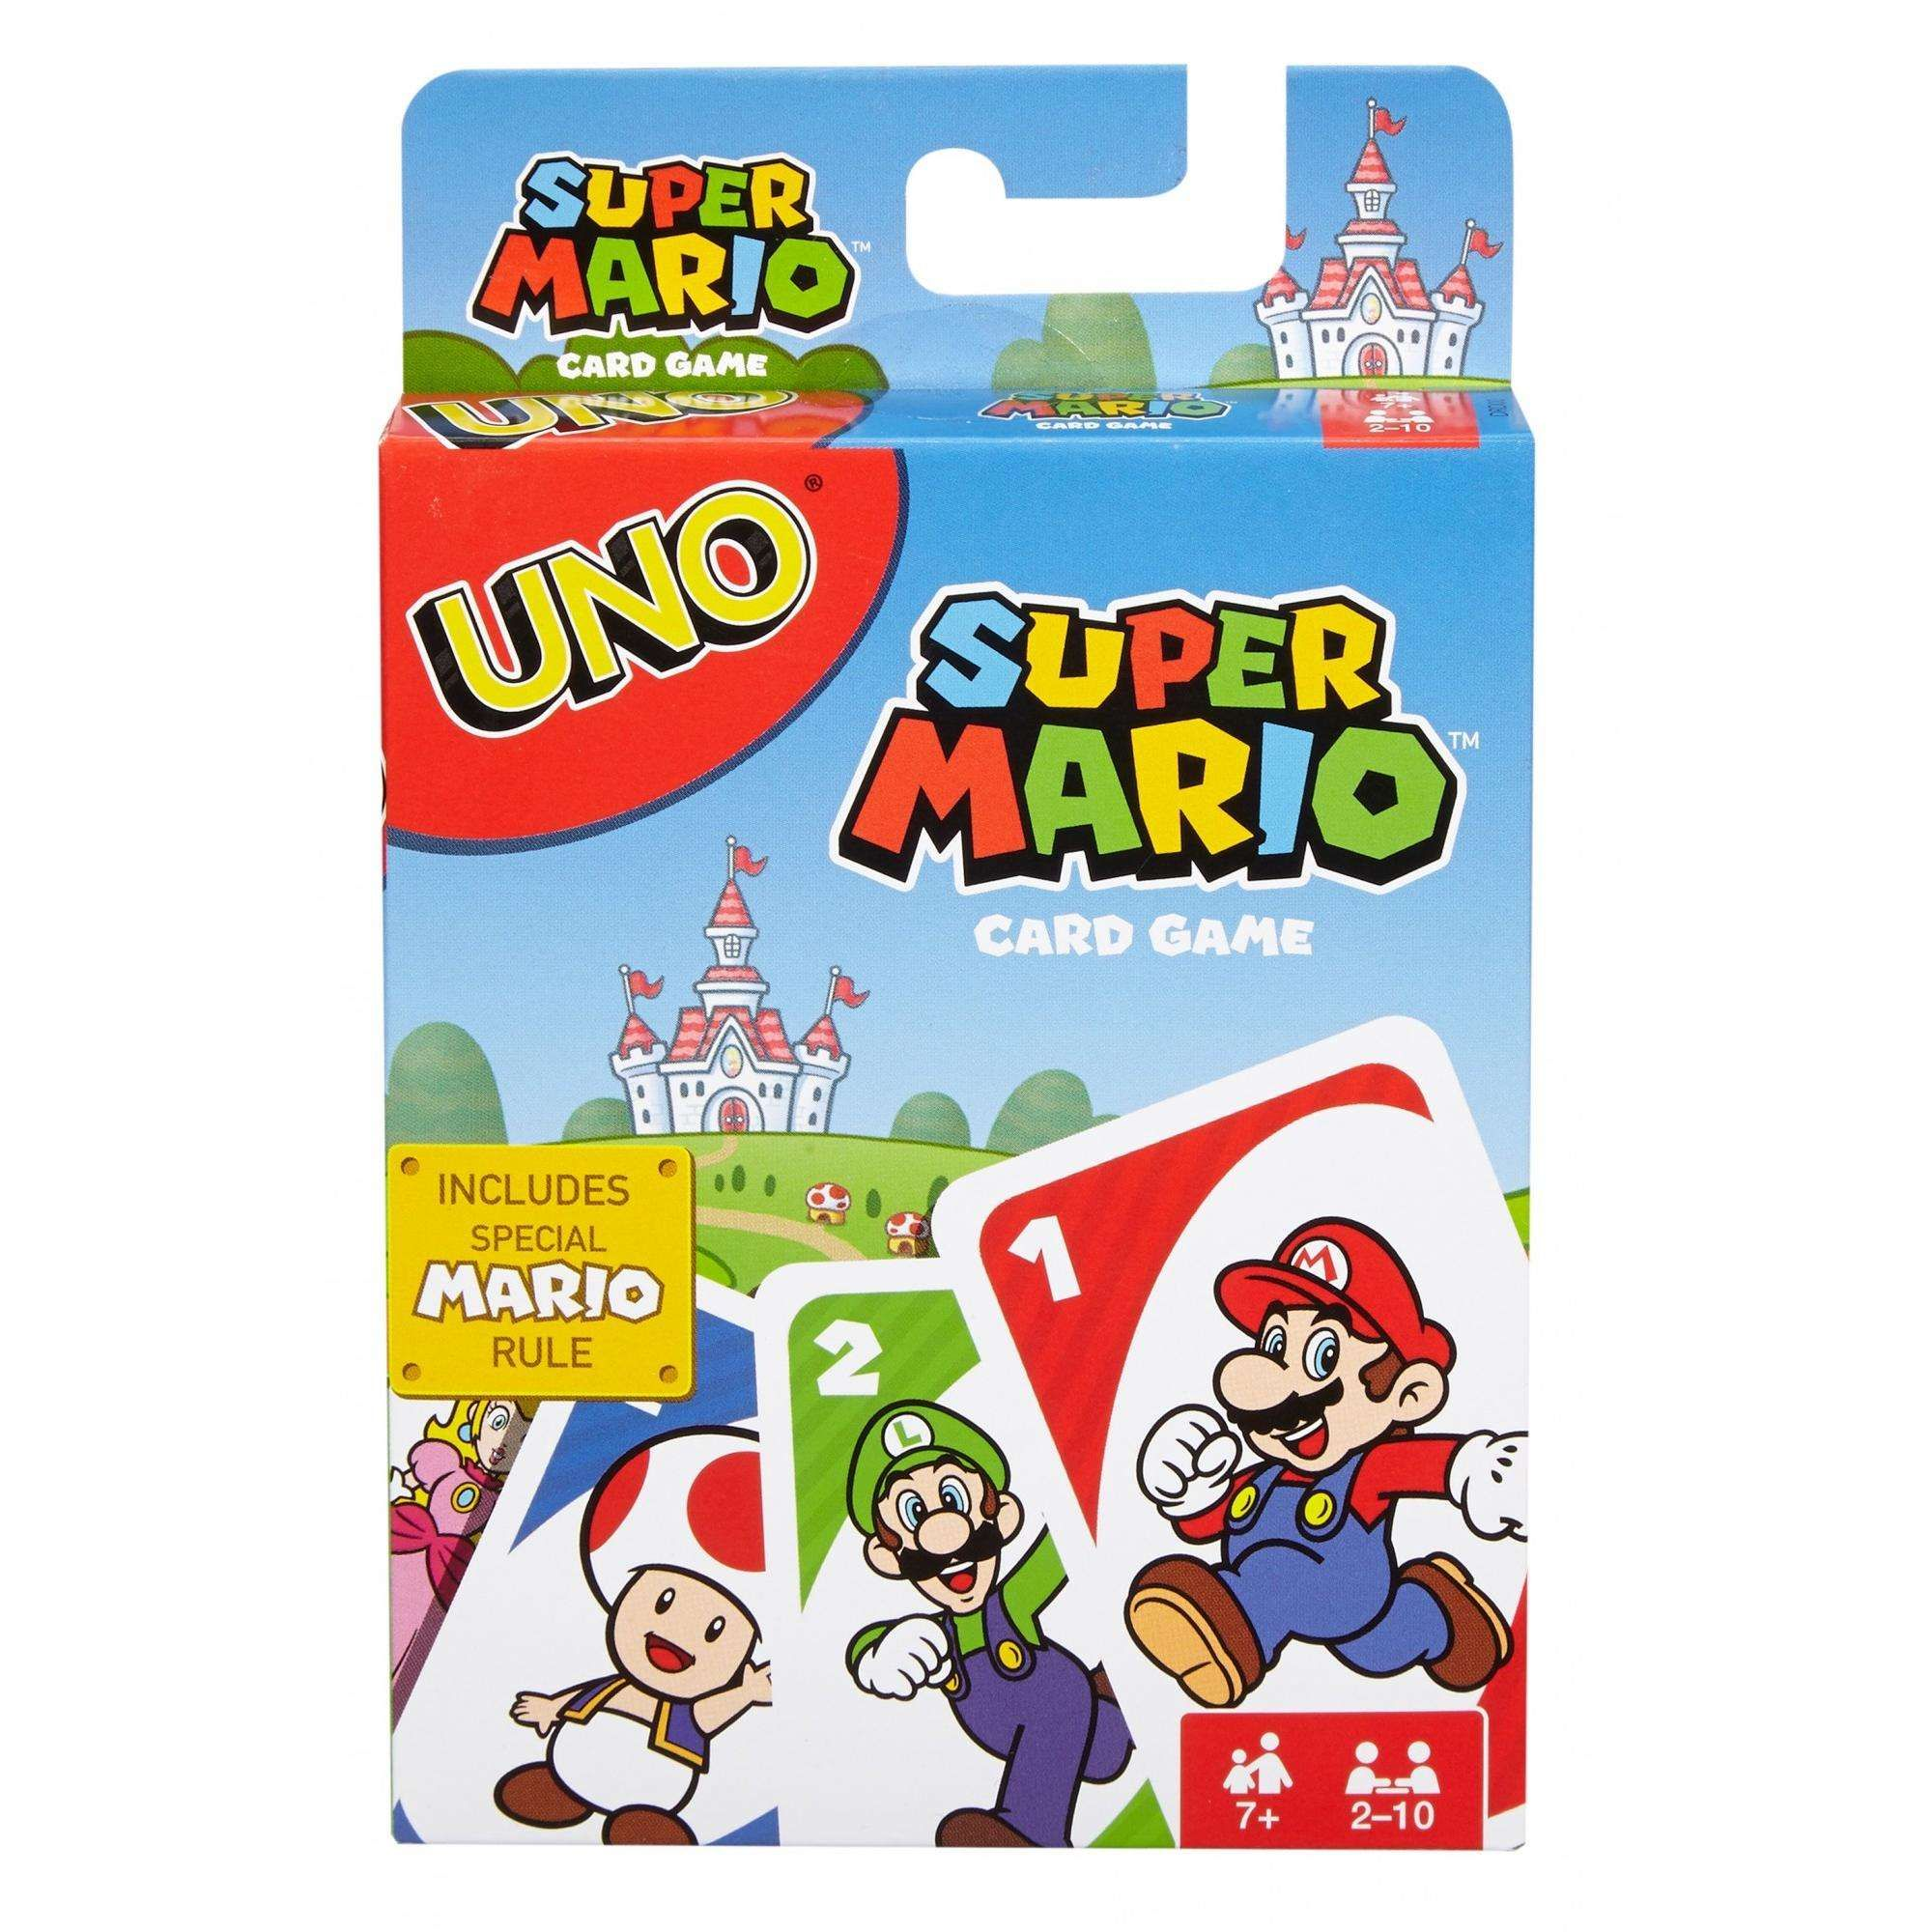 Uno Card Game Super Mario Theme For 2 10 Players Ages 7y Walmart Com Uno Card Game Card Games Super Mario Bros